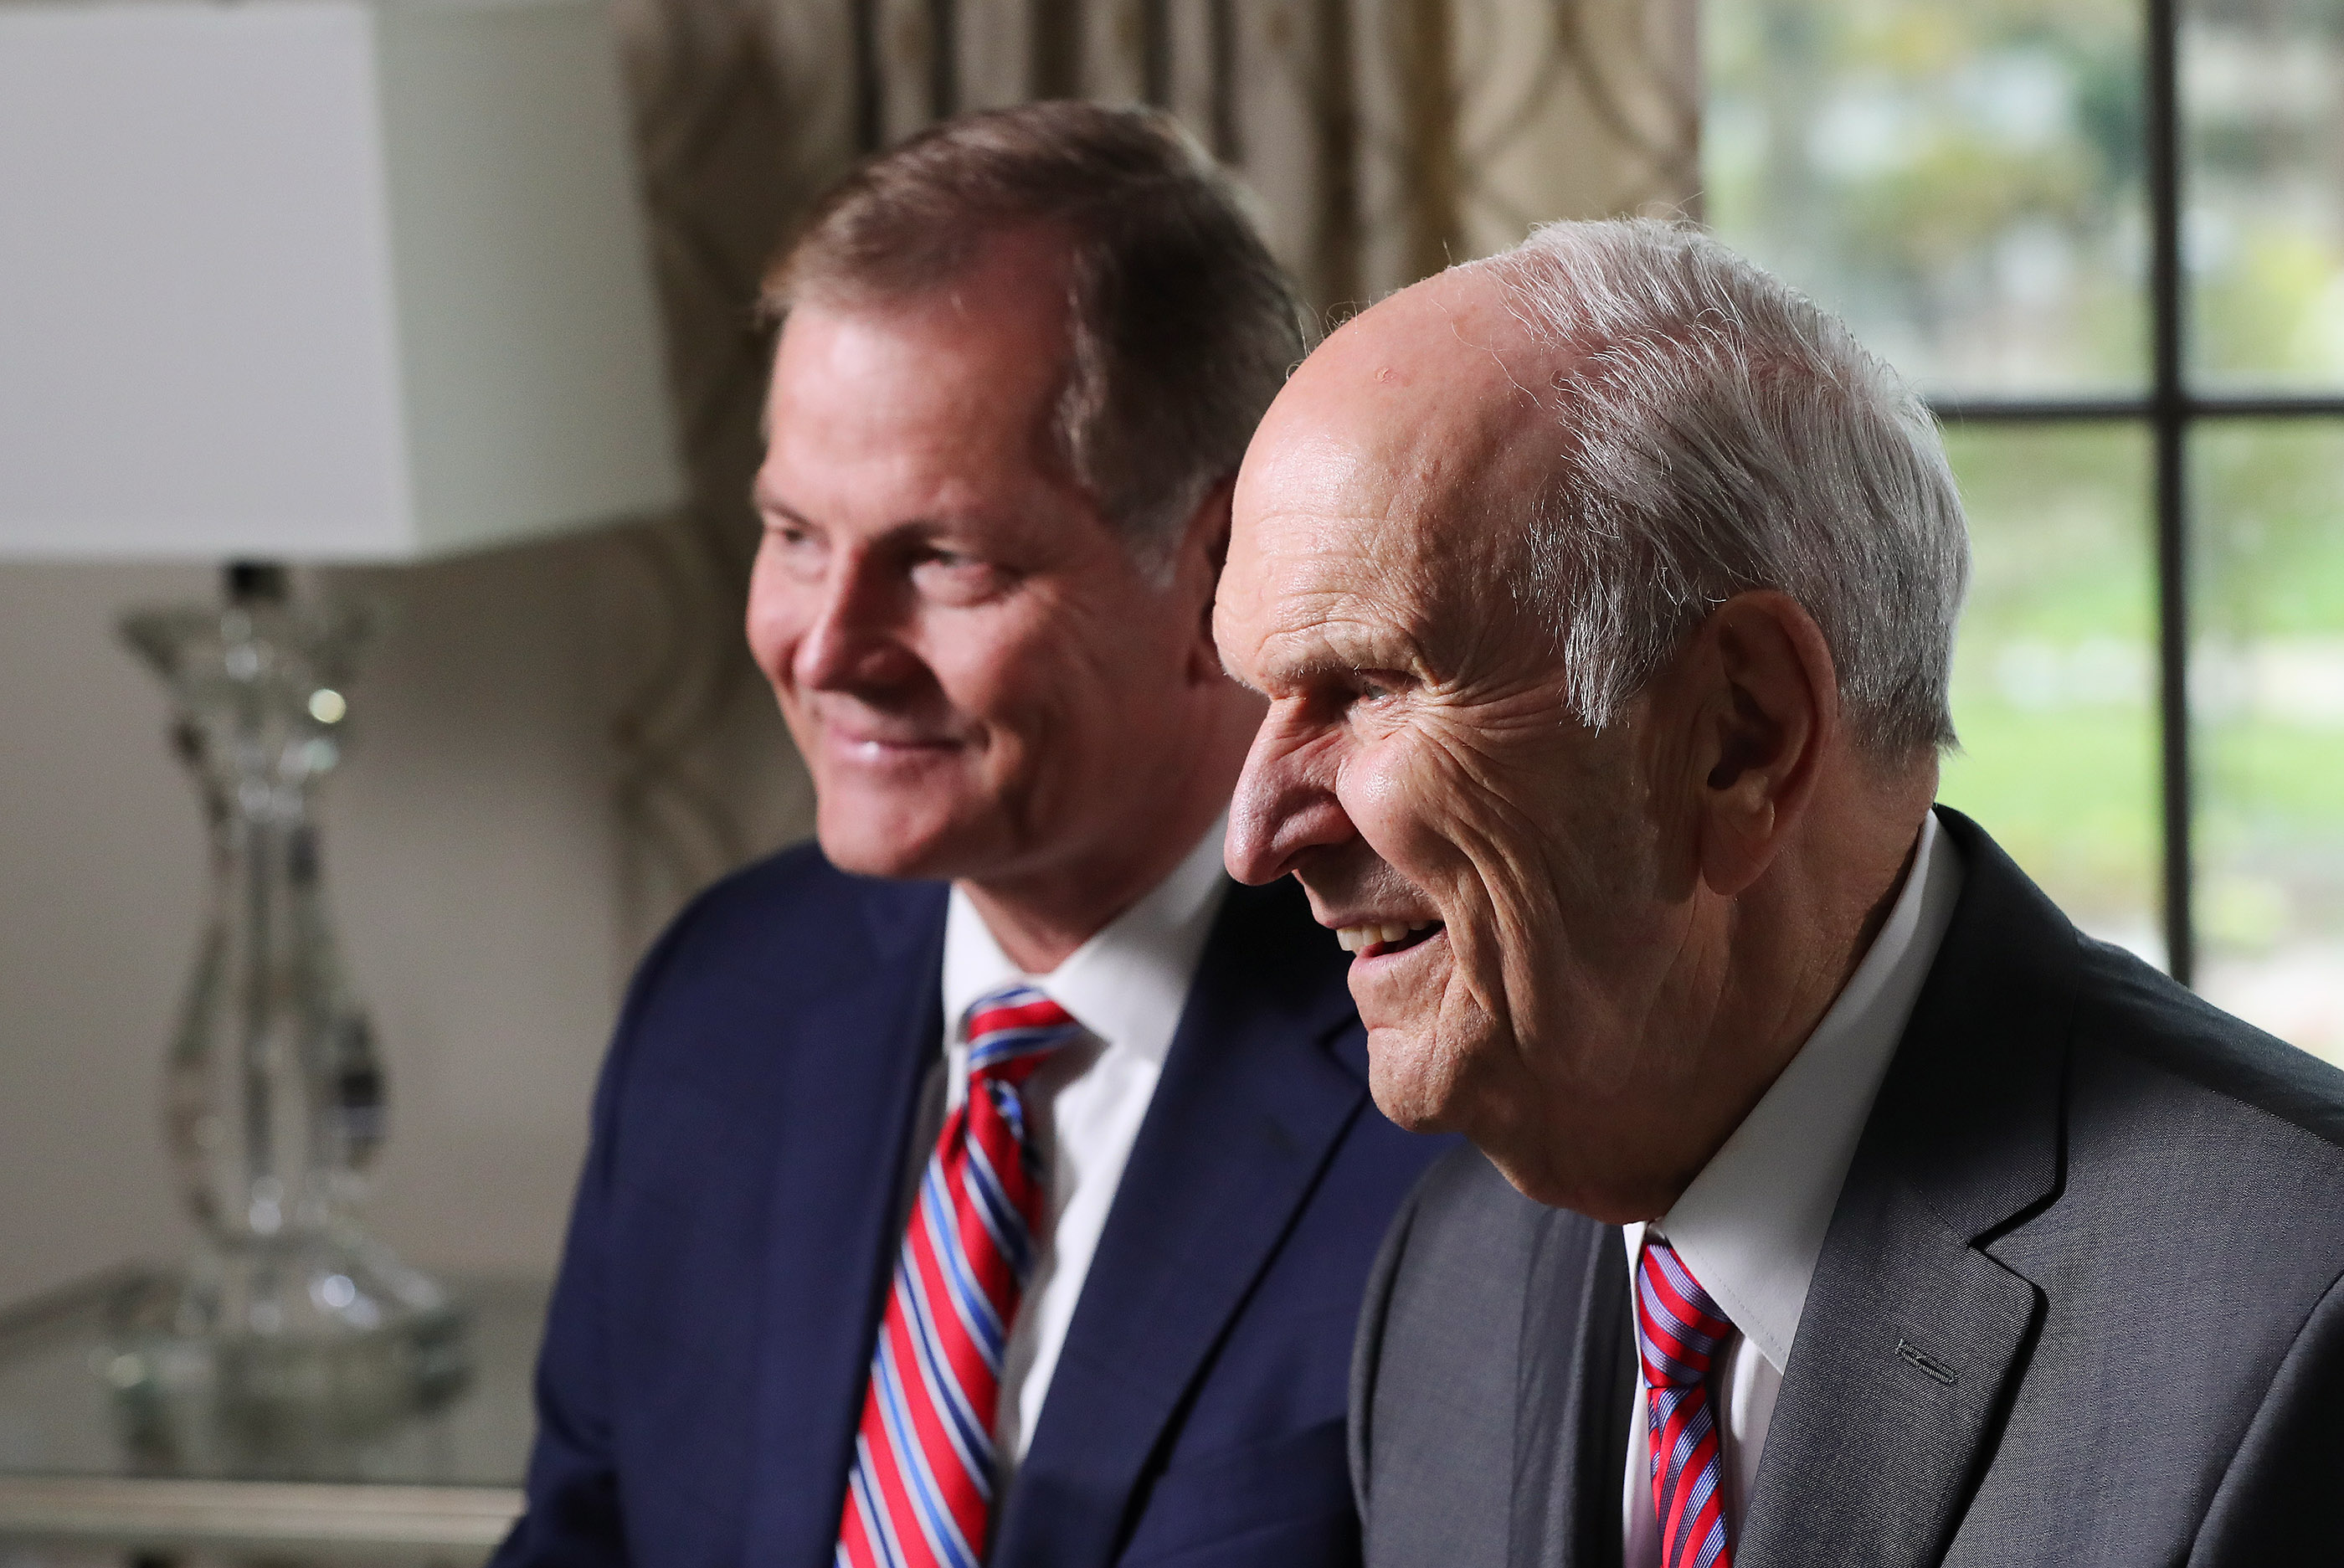 President Russell M. Nelson and Elder Gary E. Stevenson of the Quorum of the Twelve Apostles speak during a press conference after the dedication of the Concepcion Chile Temple in Concepcion, Chile, on Sunday, Oct. 28, 2018.